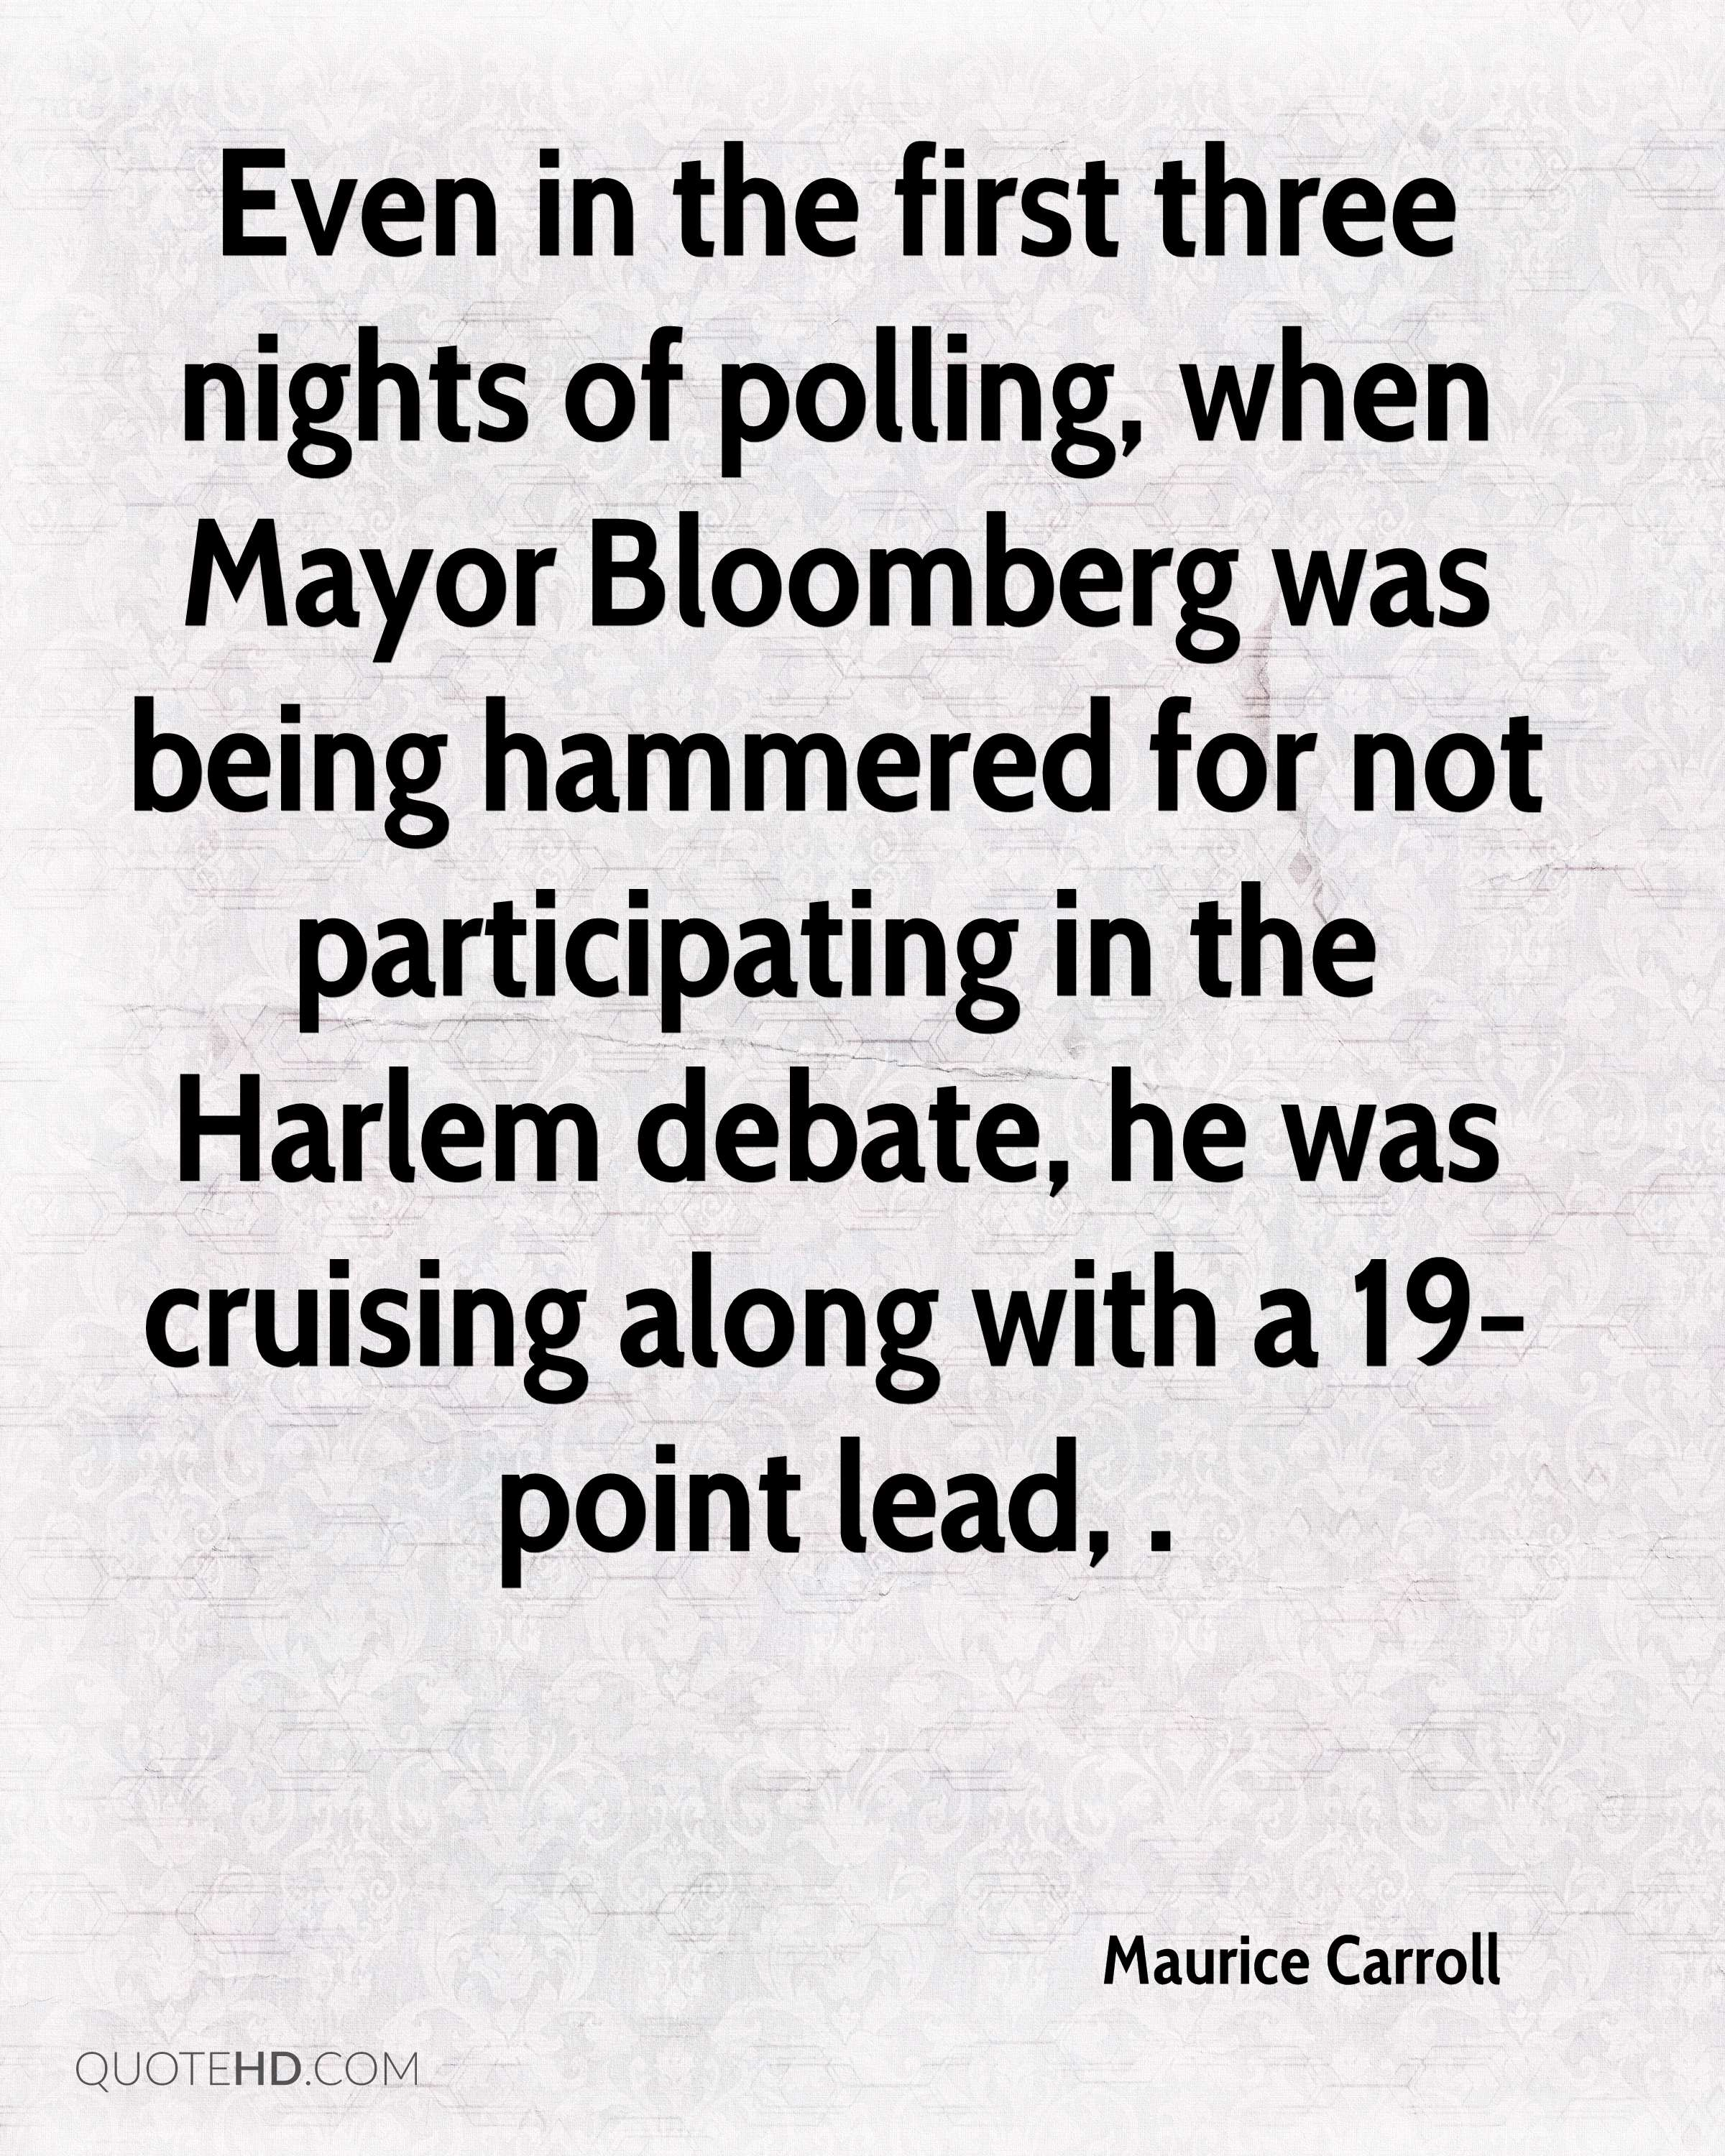 Even in the first three nights of polling, when Mayor Bloomberg was being hammered for not participating in the Harlem debate, he was cruising along with a 19-point lead, .